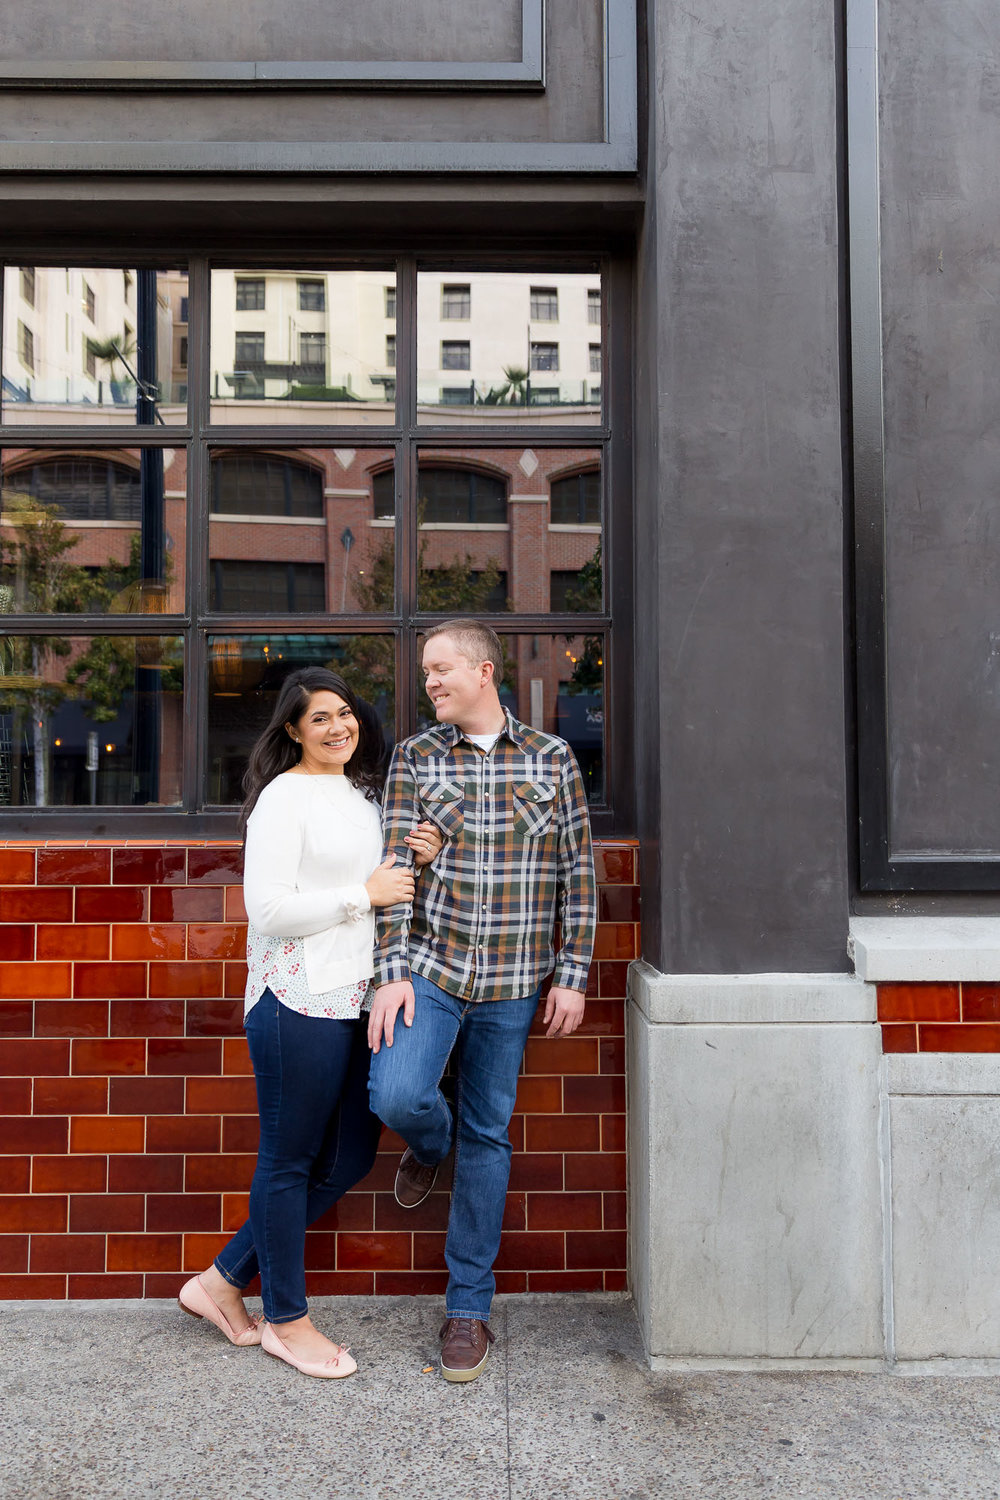 Bryan_Velia_Downtown_San_Diego_Engagement_Photography-1.jpg